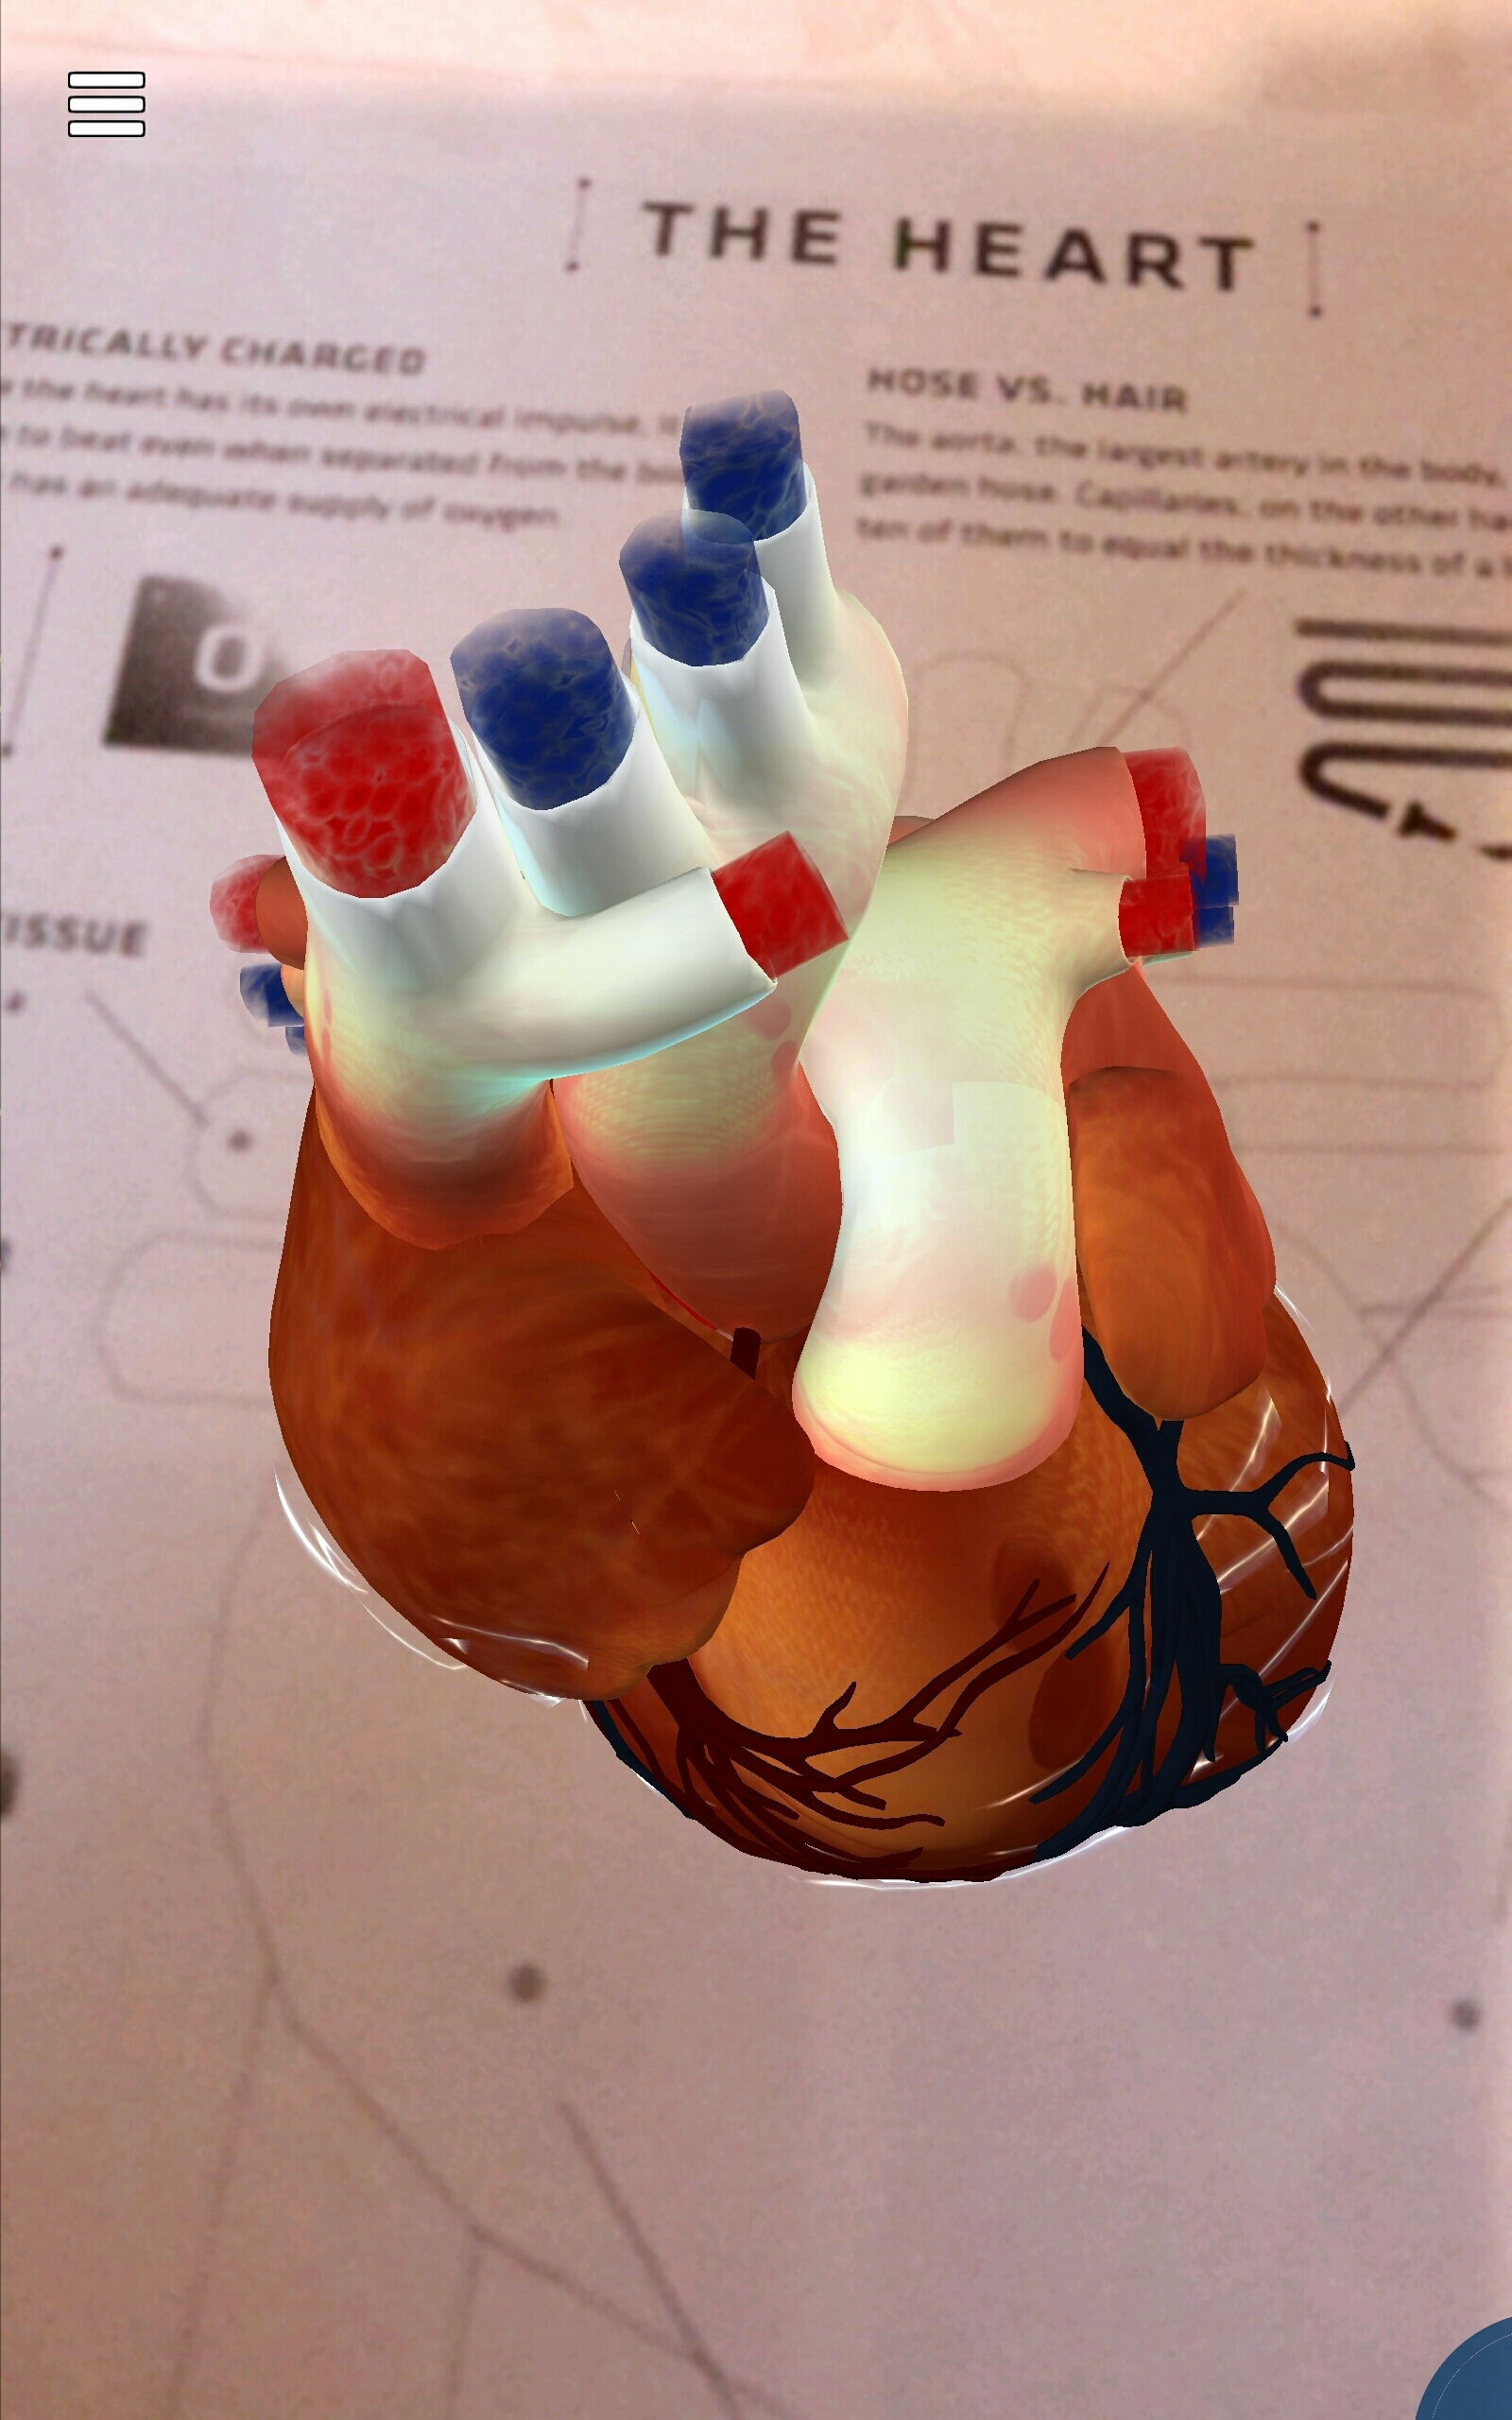 Augmented Reality allows students to study heart circulation and structure in 3D view.